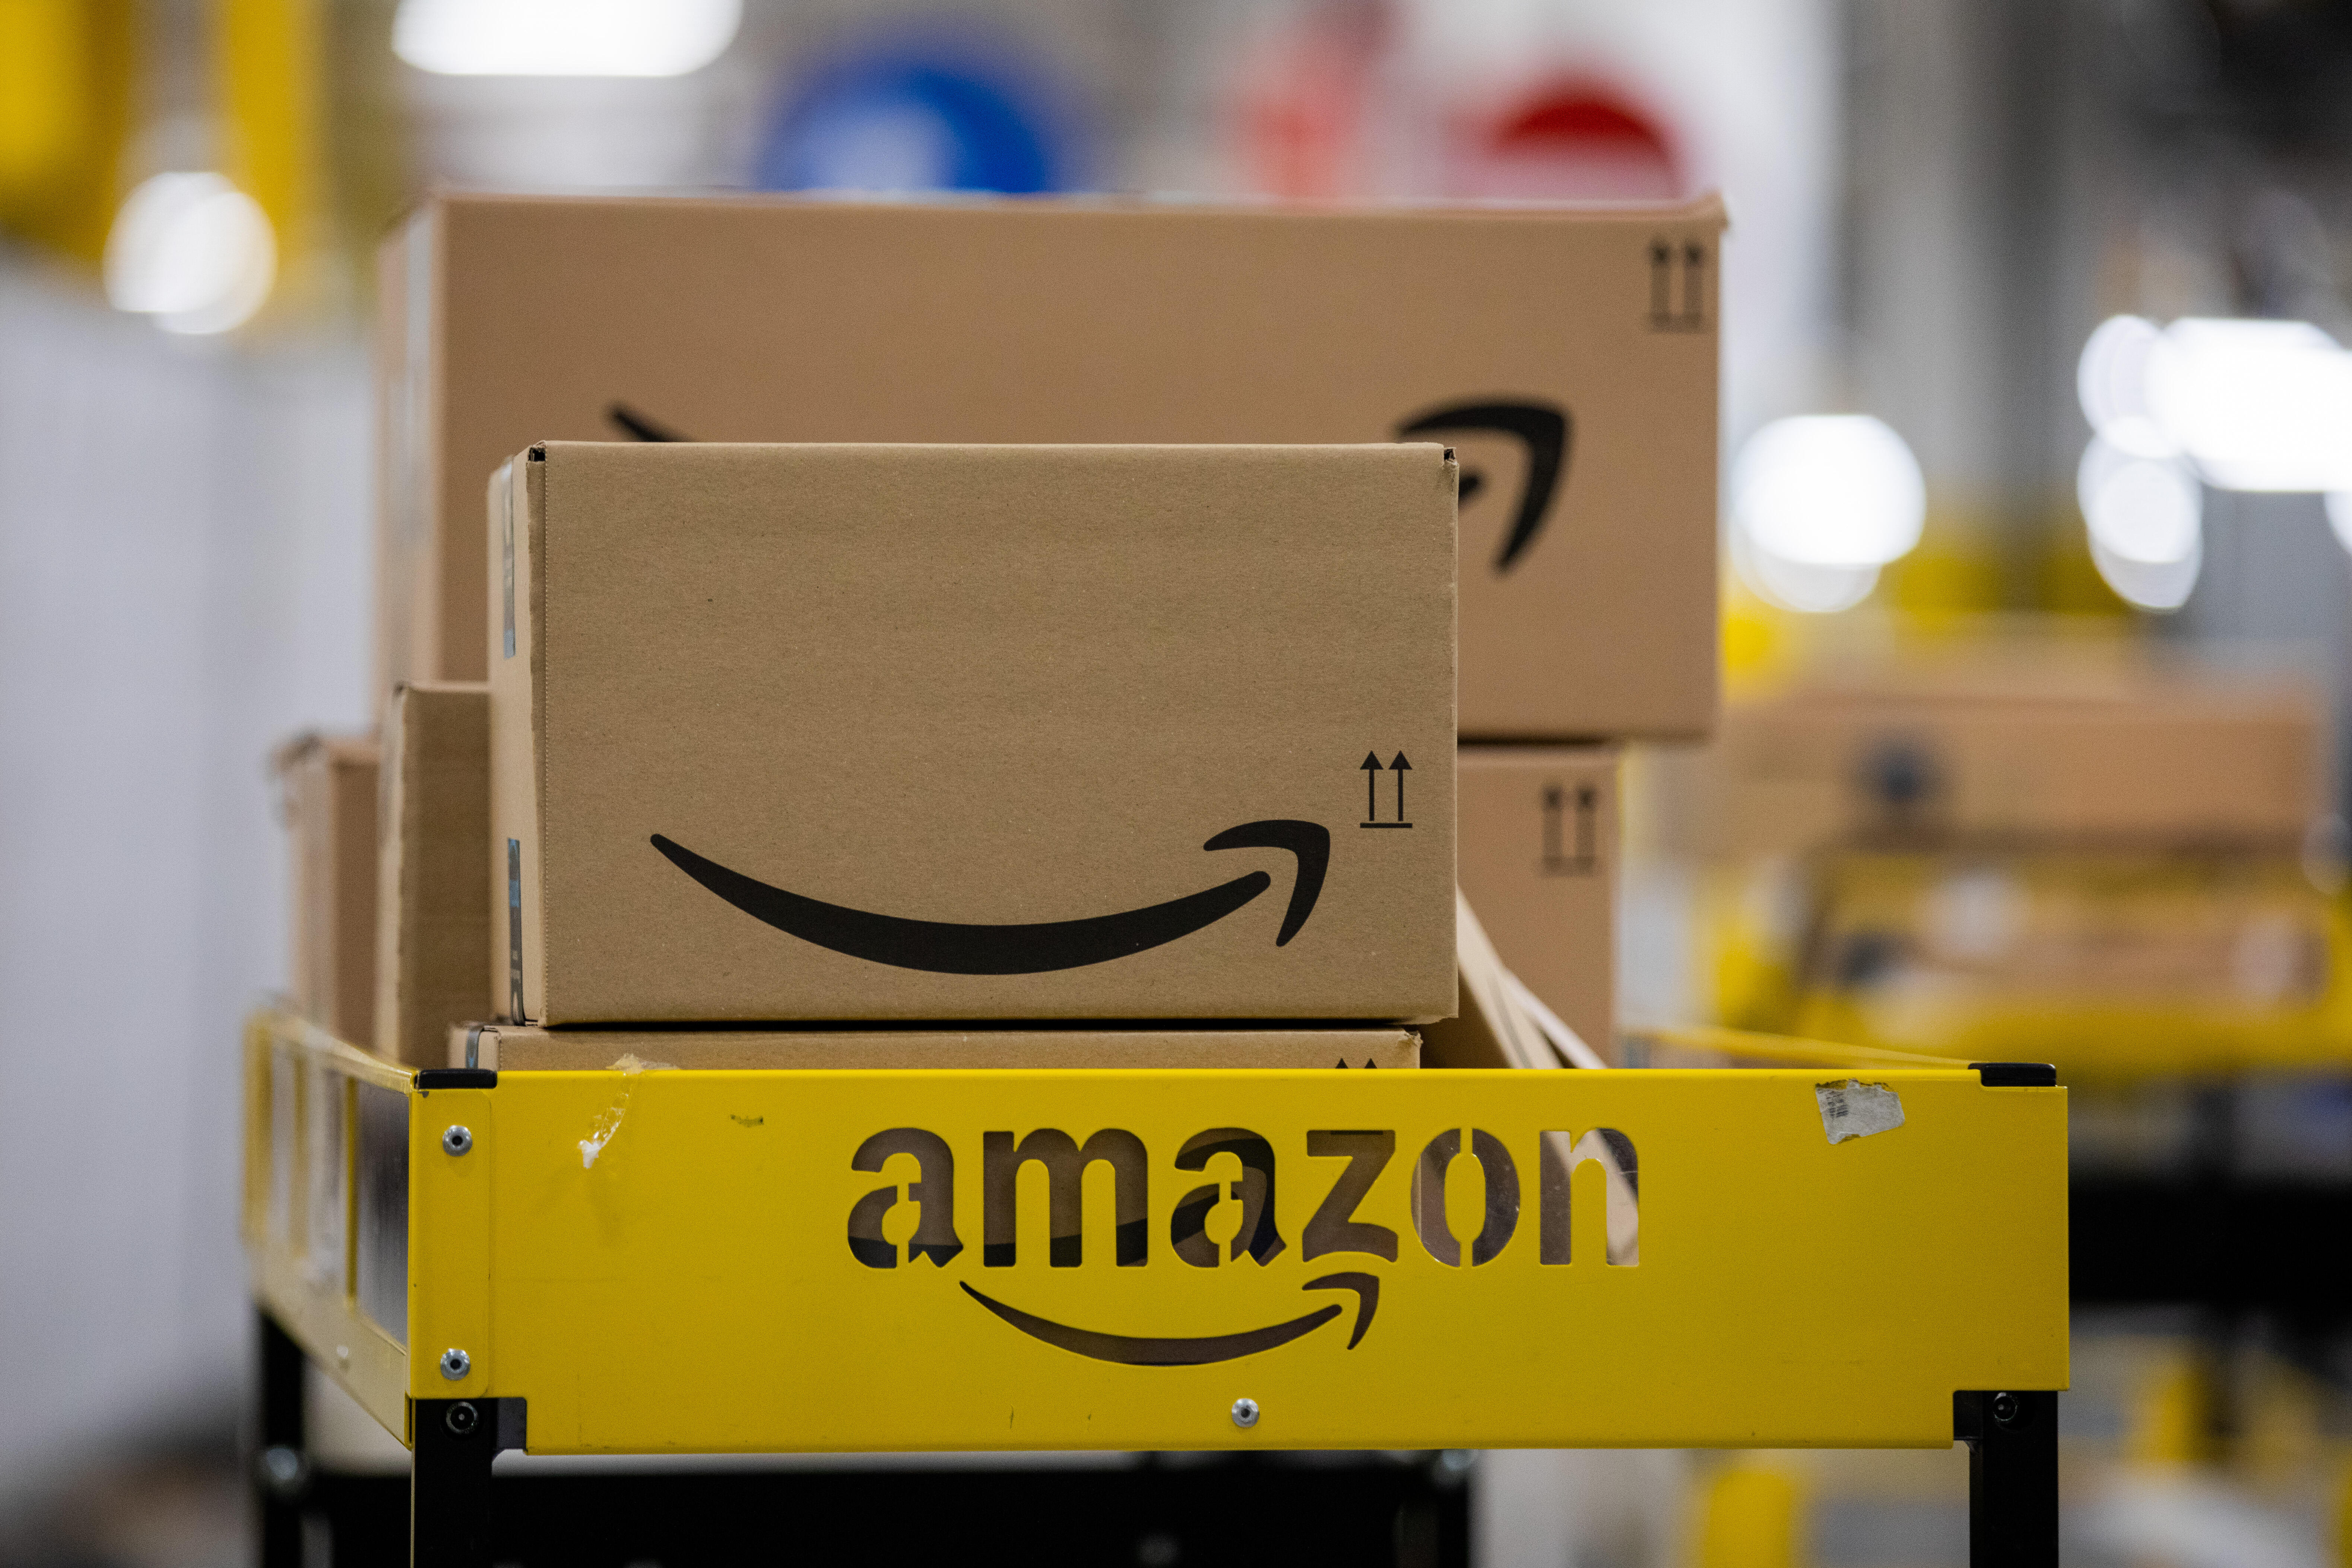 Brown boxes with Amazon's smiling logo on the side sit on a metal shelf.